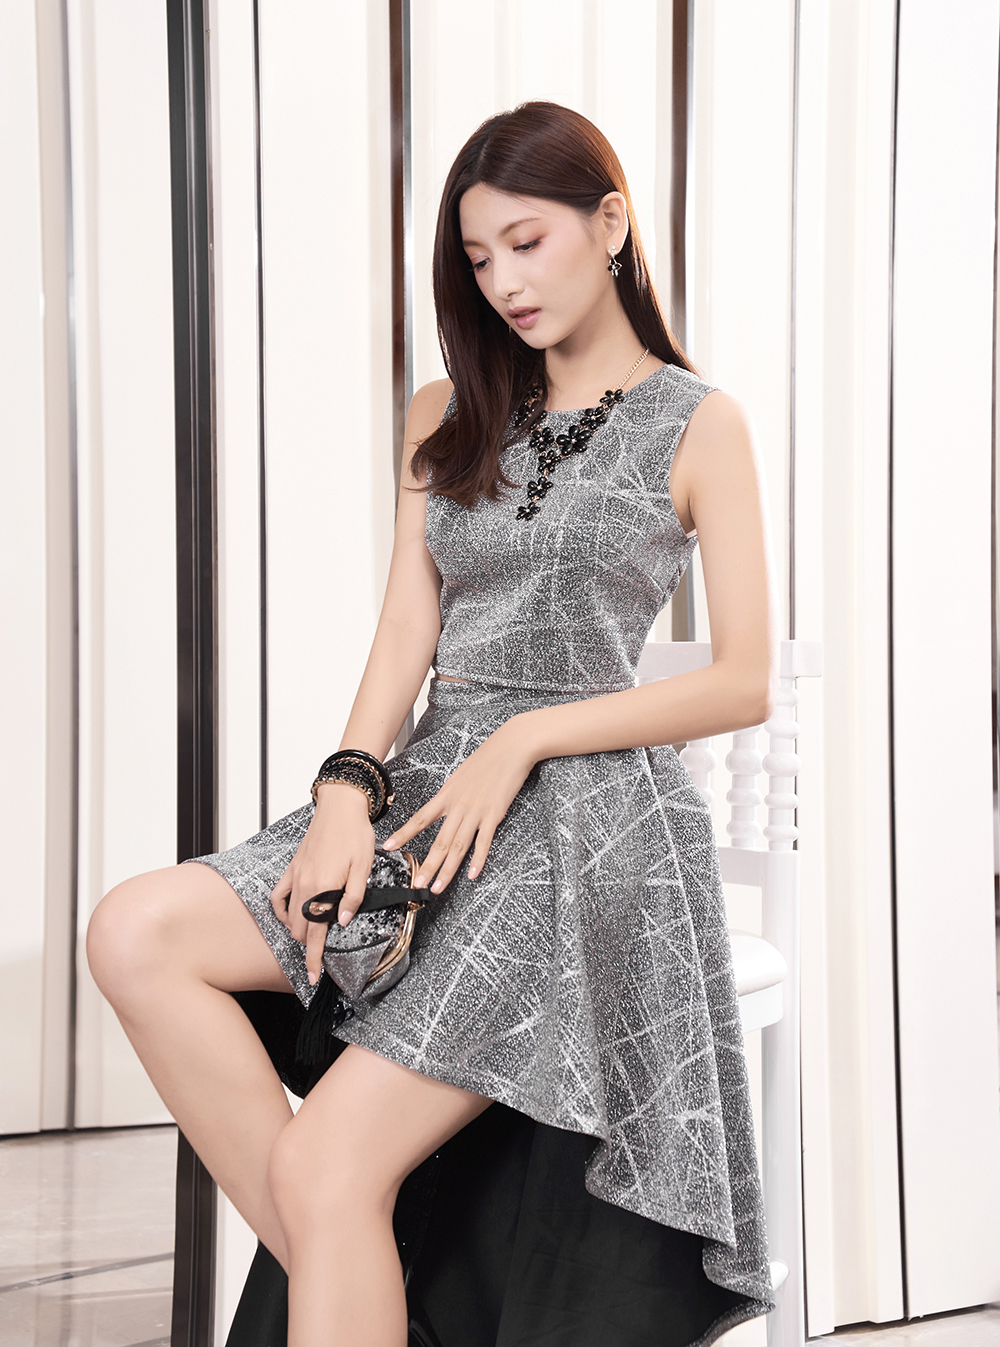 6352165ef1d51 PLAYCOLOR 2 Piece Sleeveless Glitter Cocktail Dress Long 2017 Woman ...